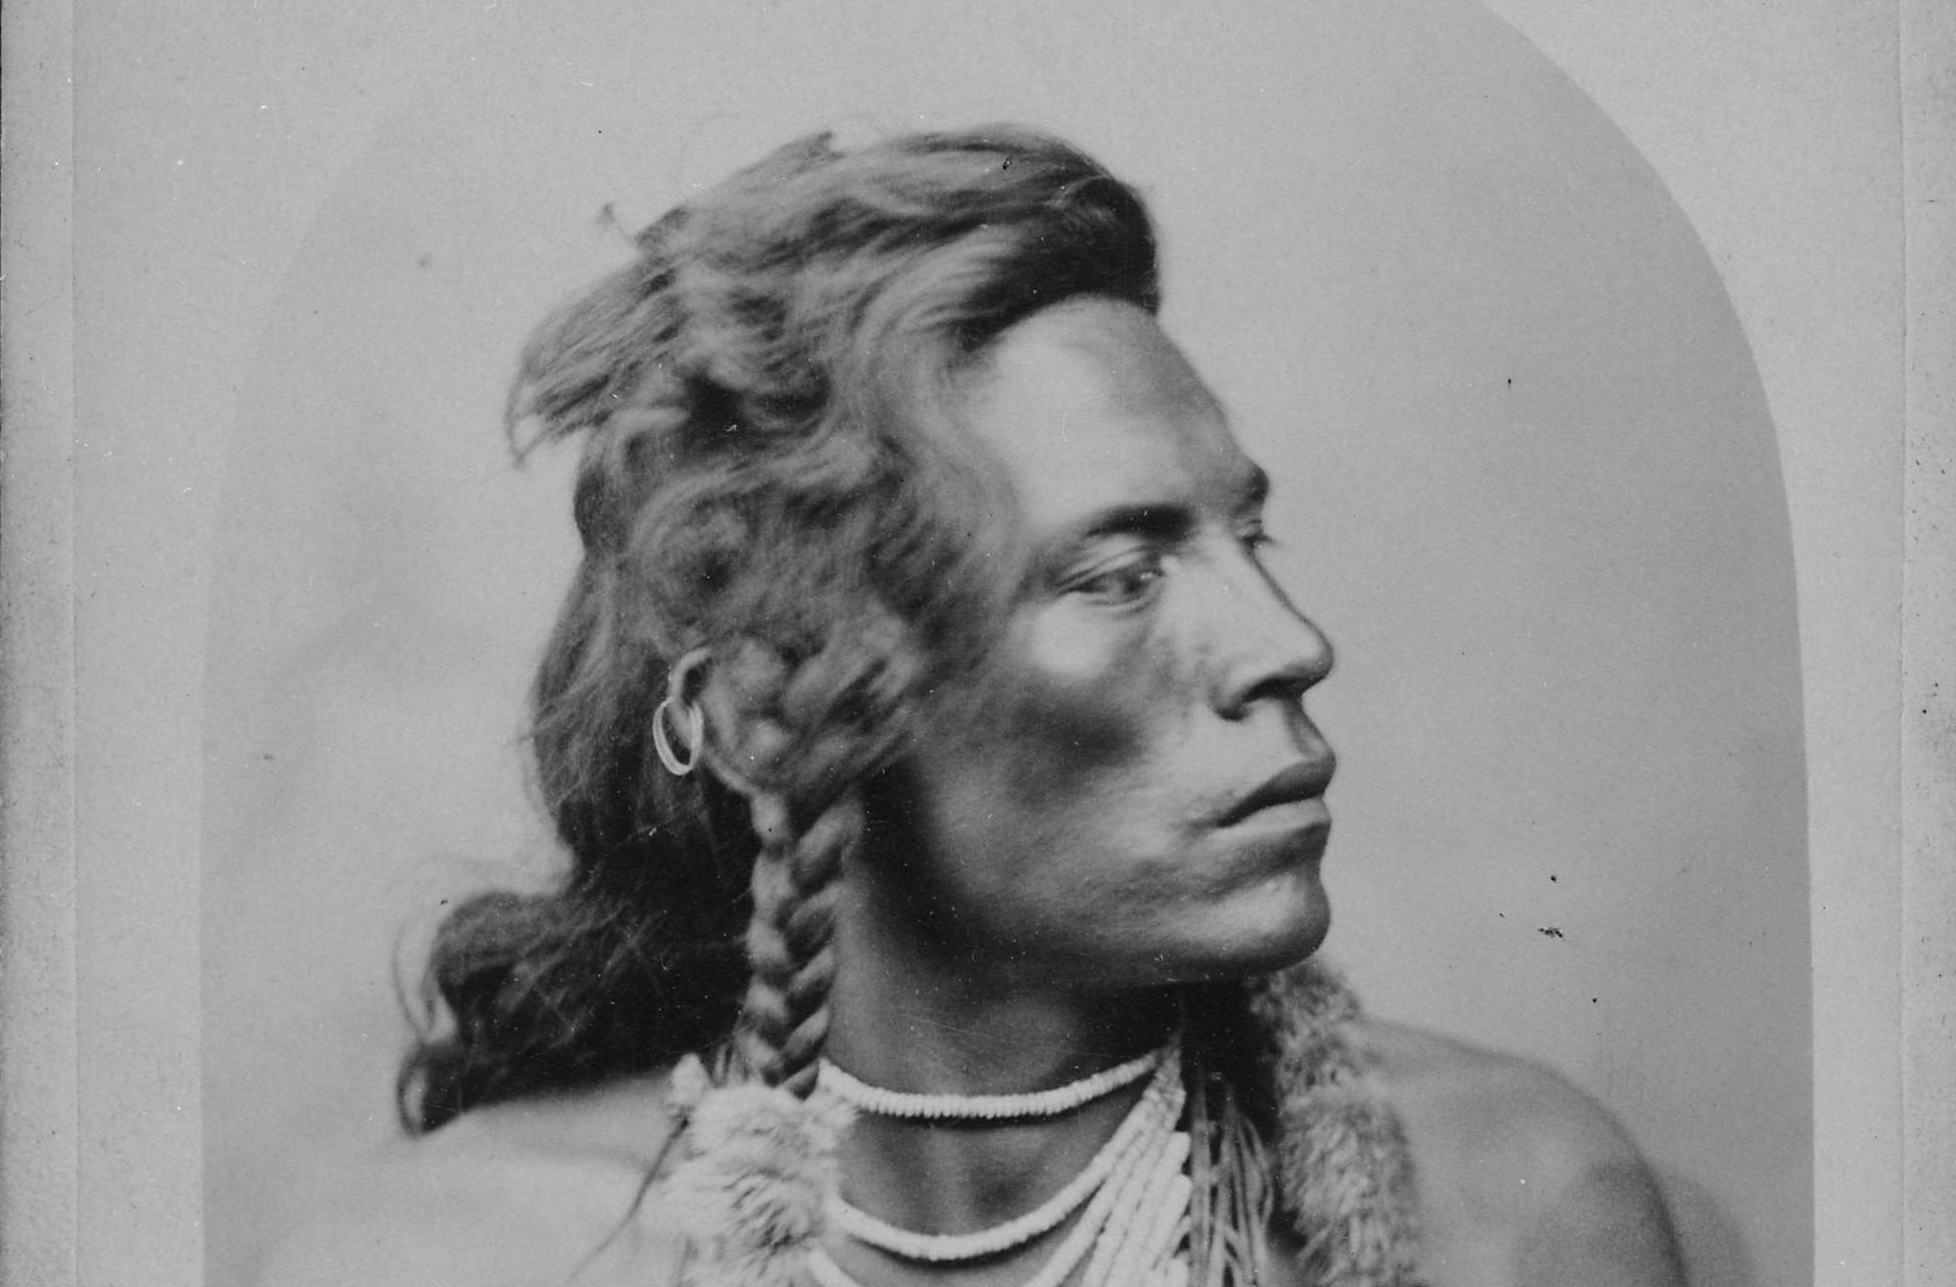 Curley, Crow Indian Scout